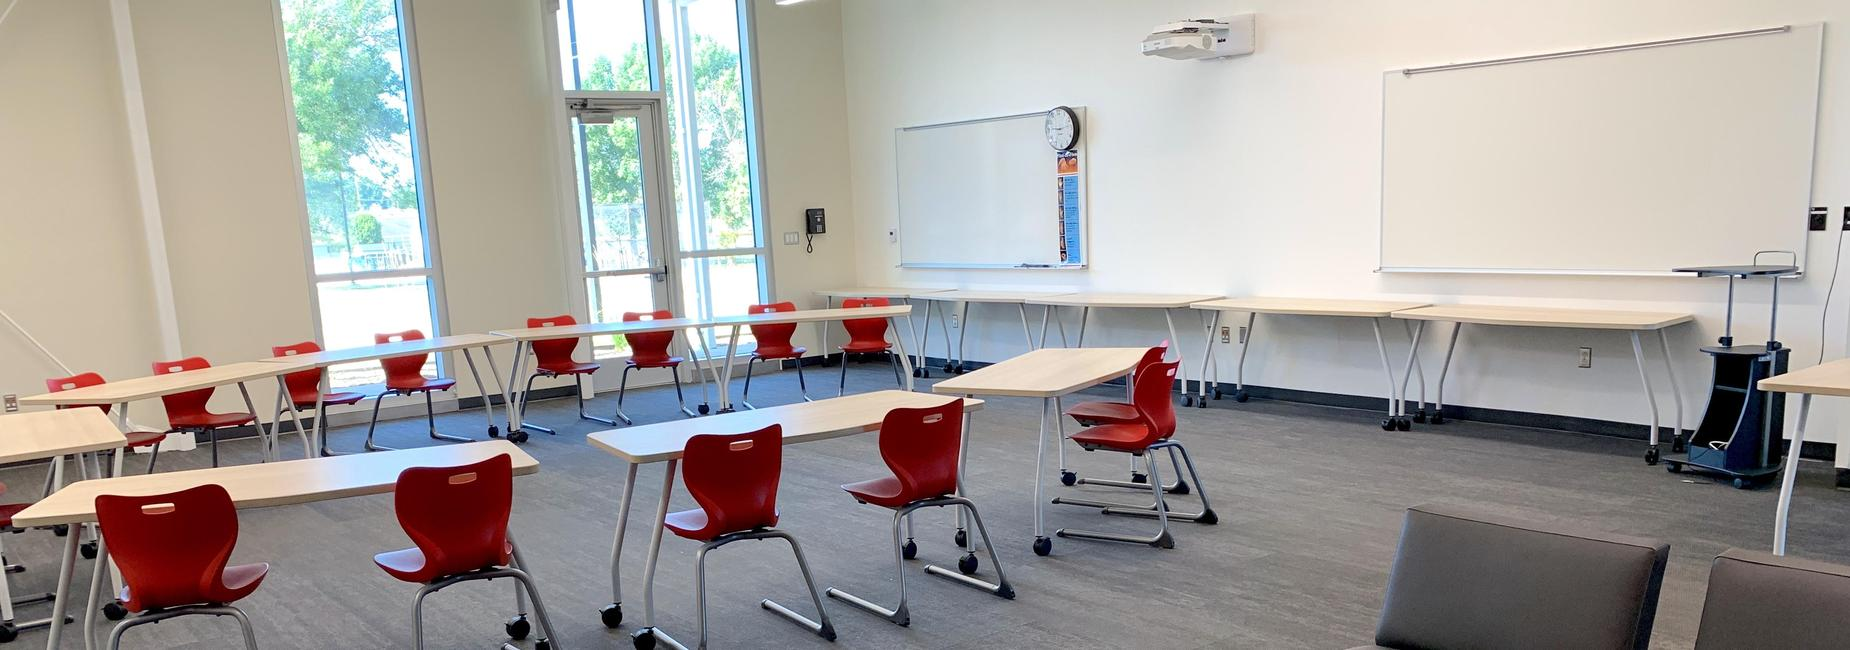 Picture of middle School Classroom